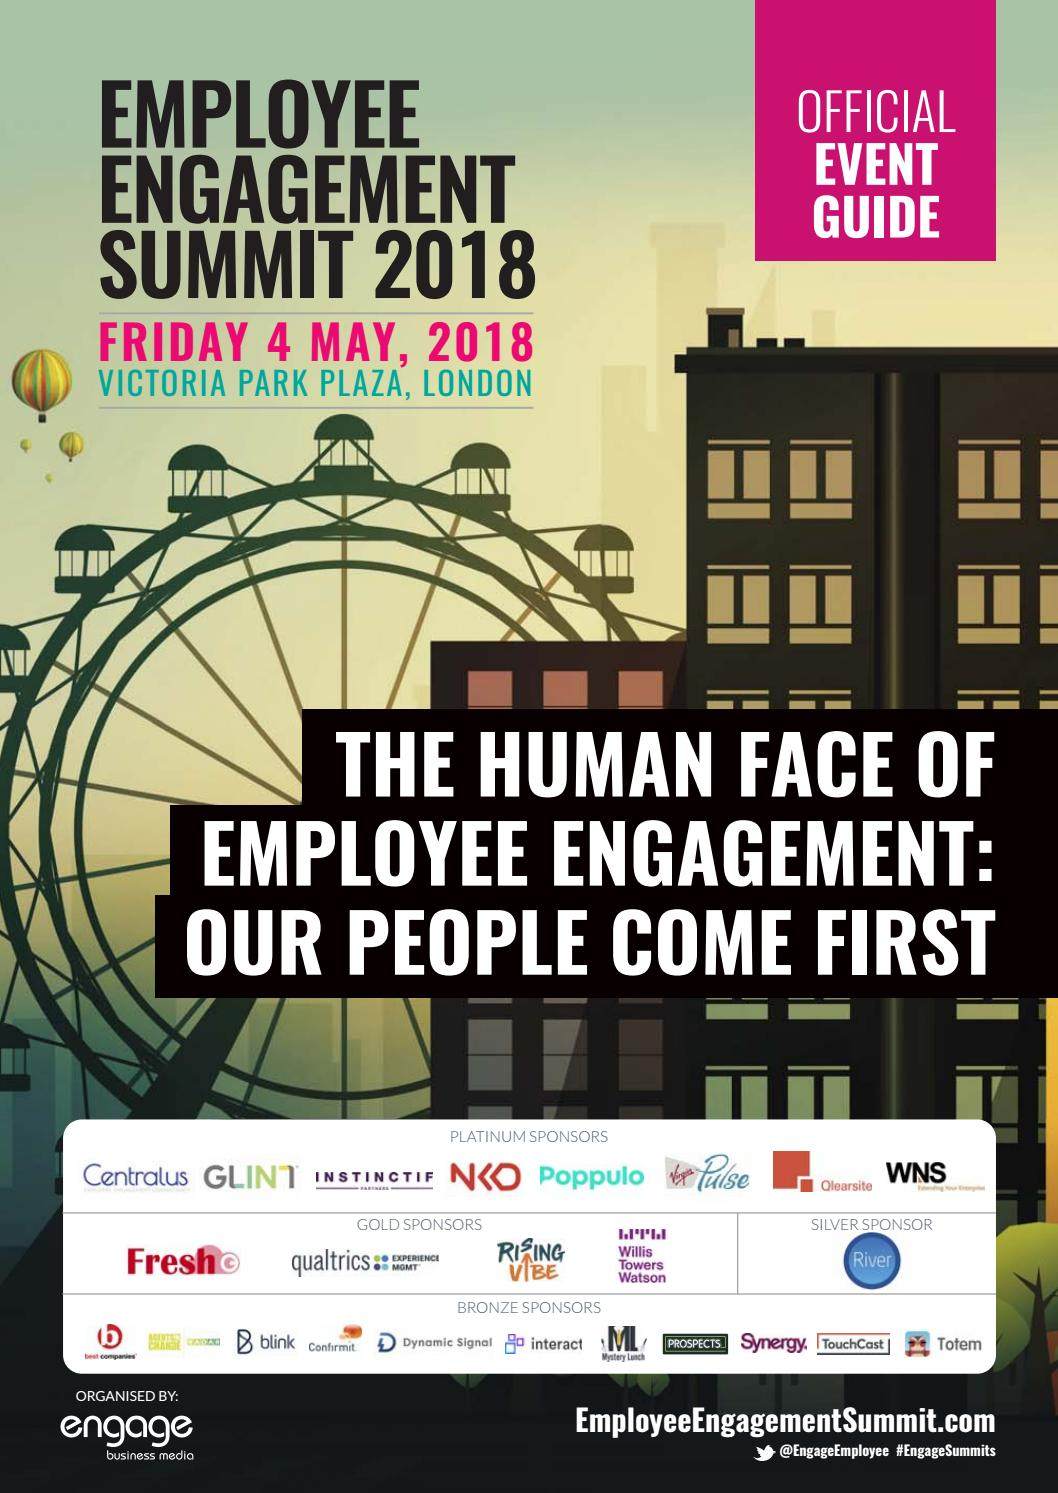 2018 Employee Engagement Summit Event Guide by Engage